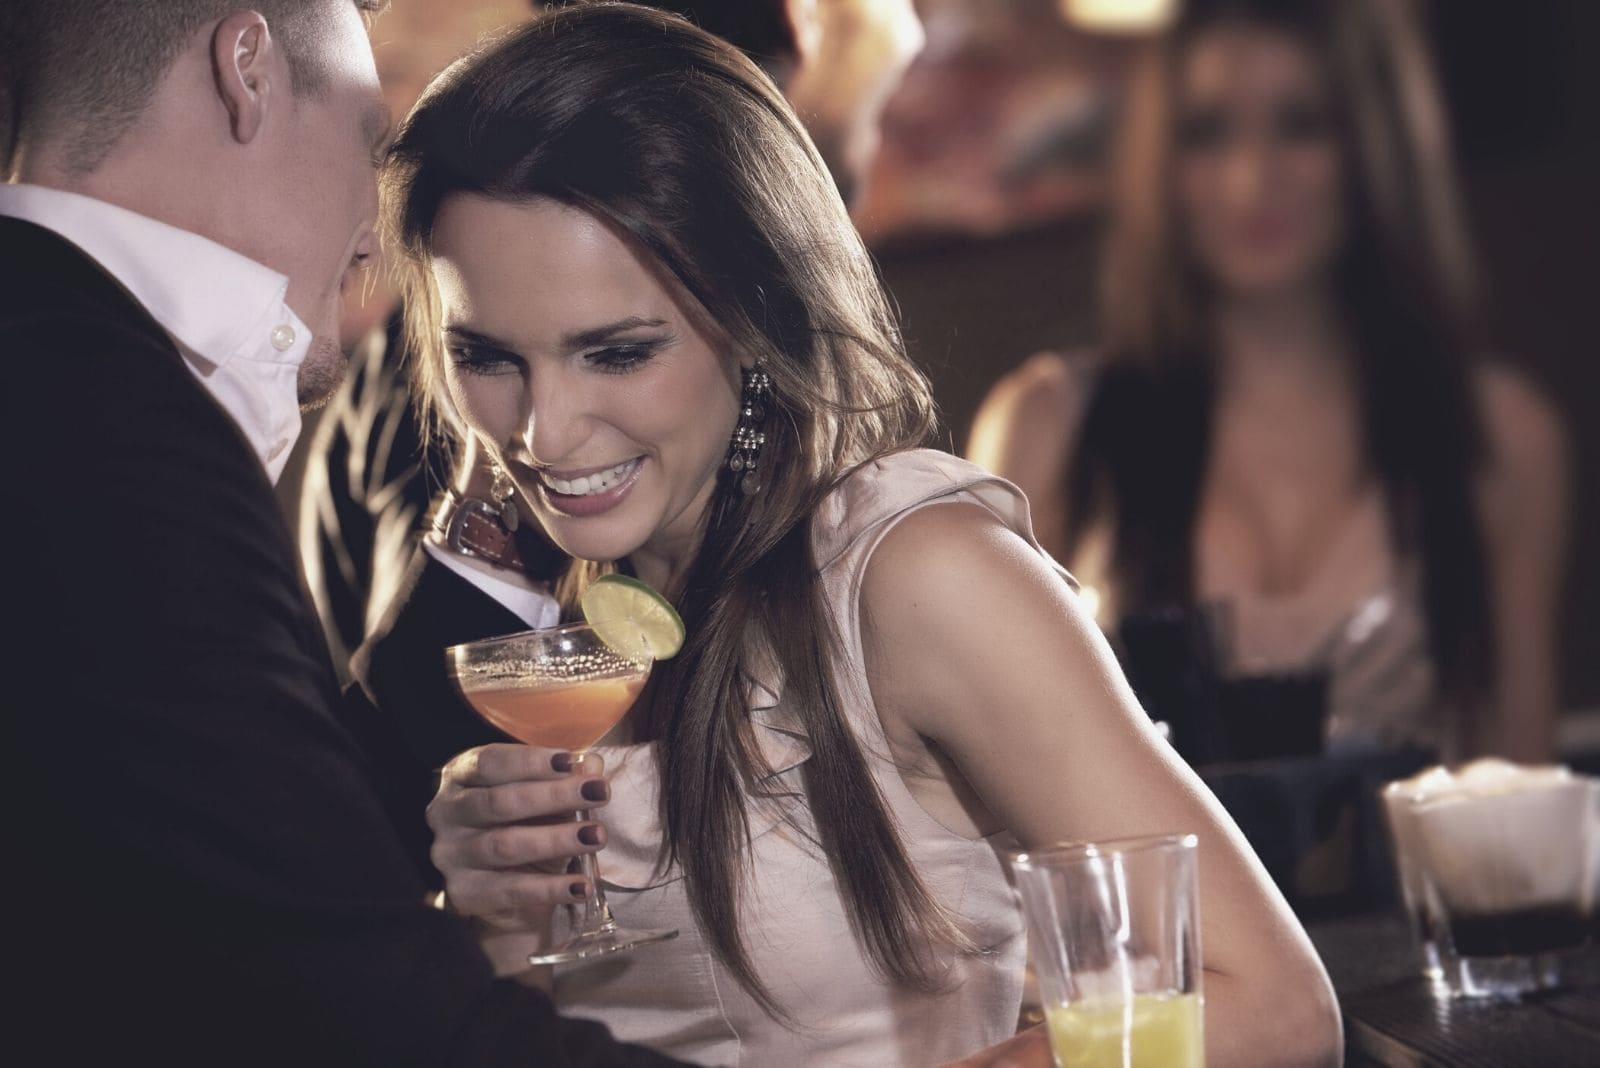 man whispers on woman in a party/club while drinking wine